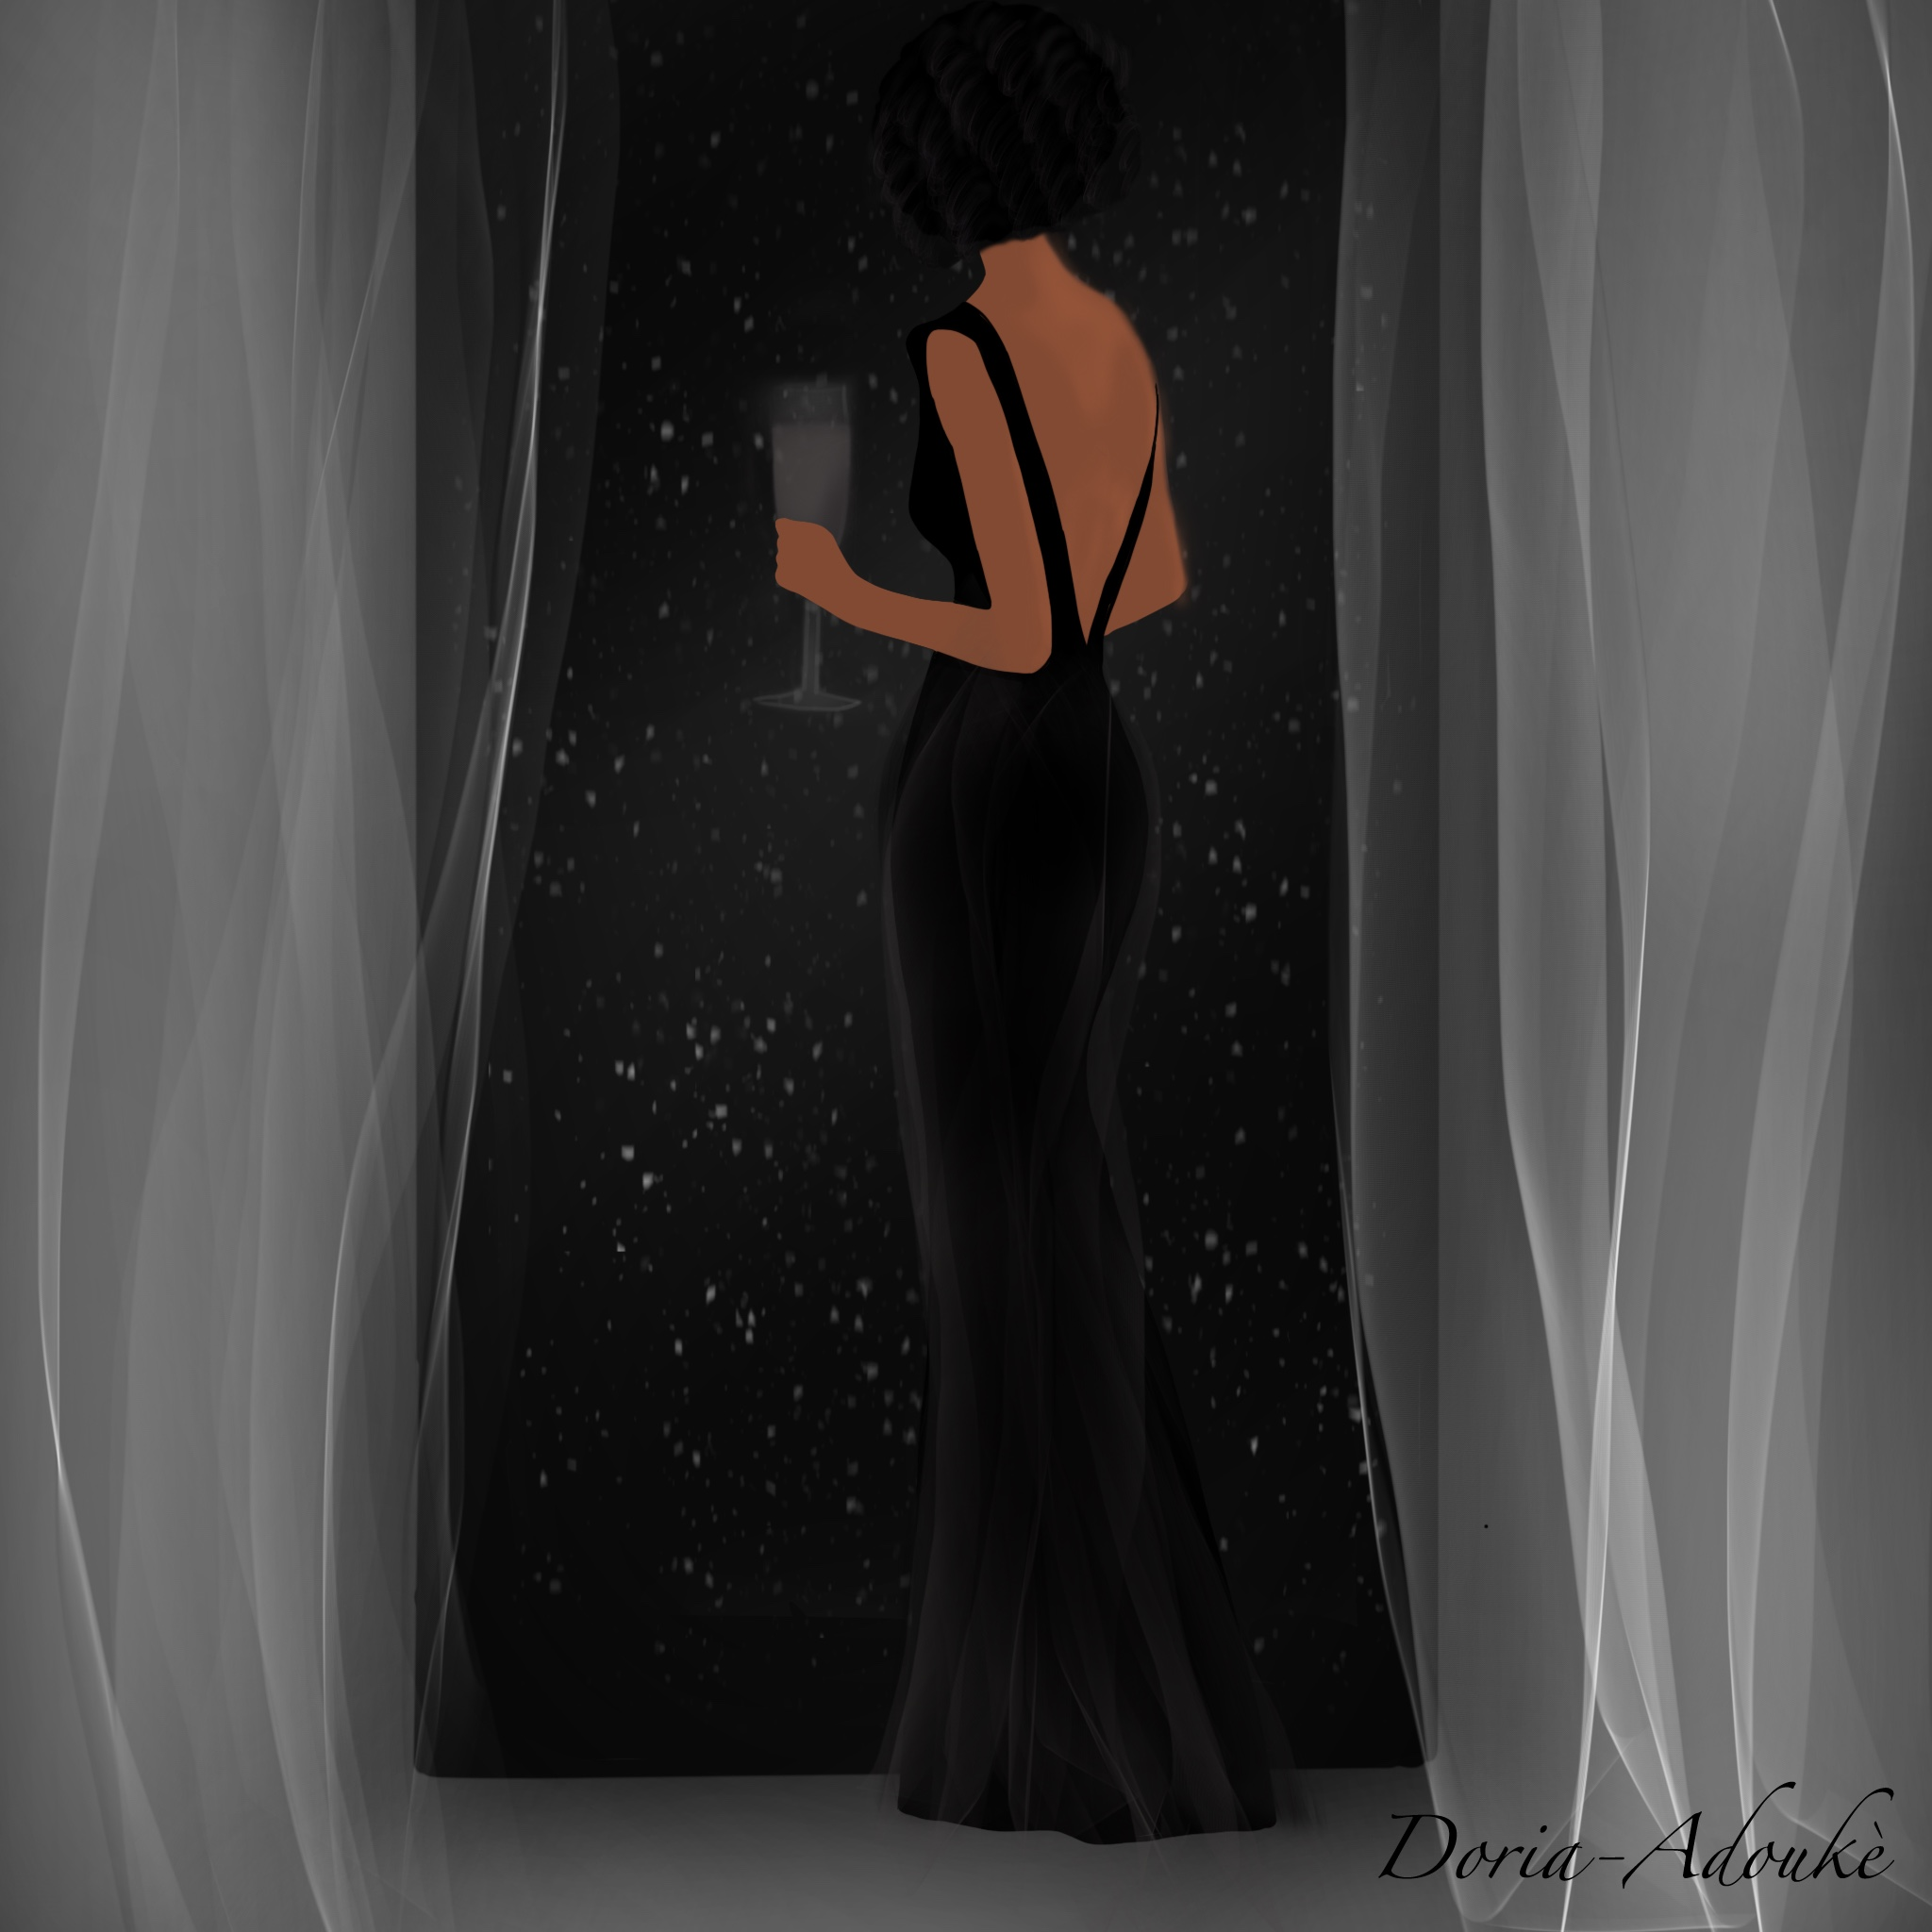 black girl in a cocktail dress illustration